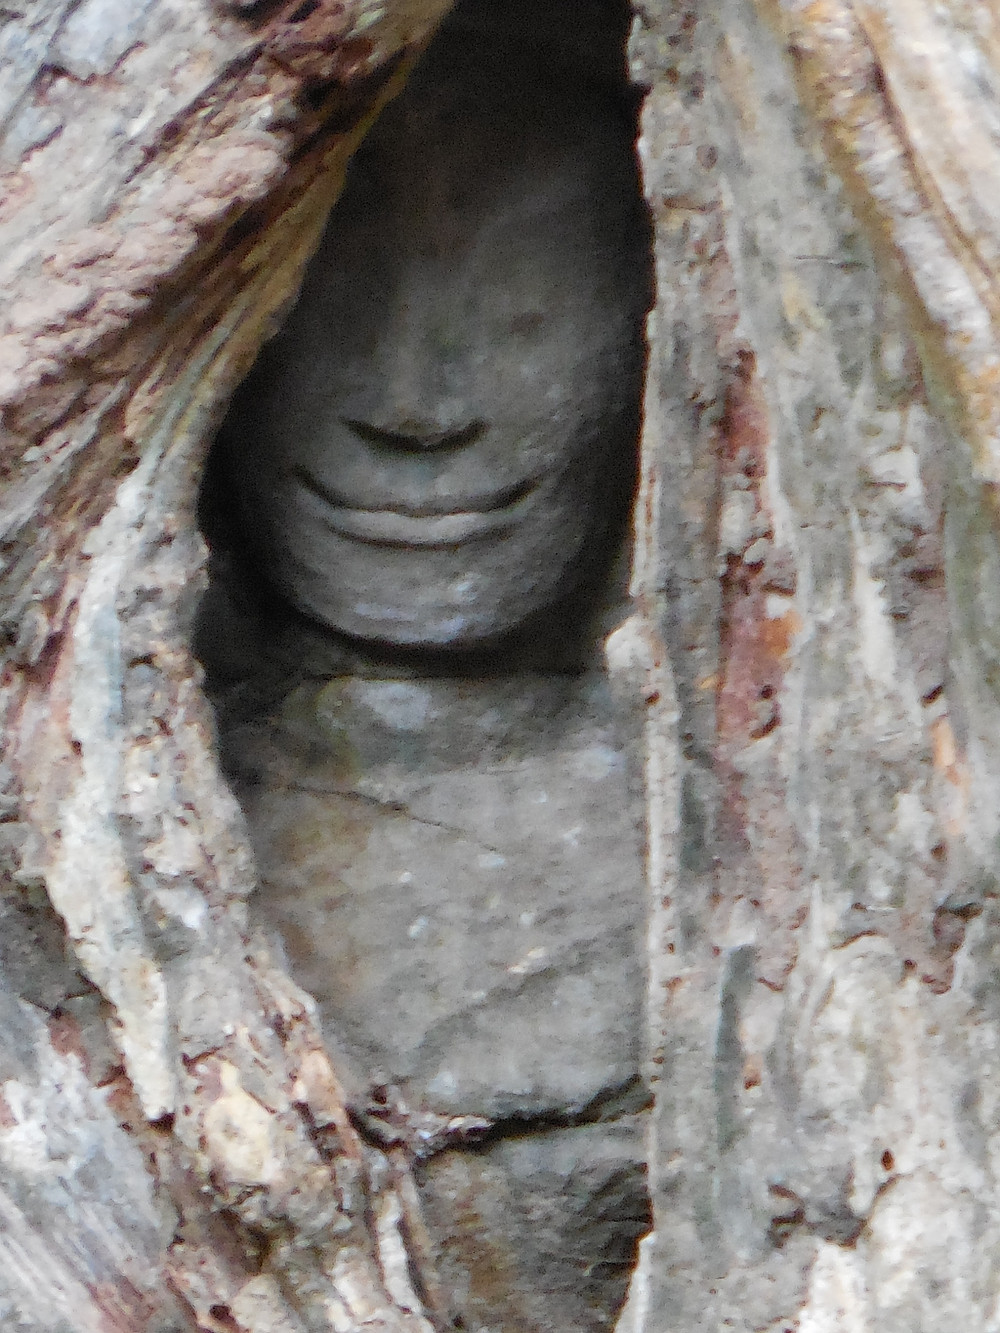 A close-up of the stone face peeking through the hole in the tree